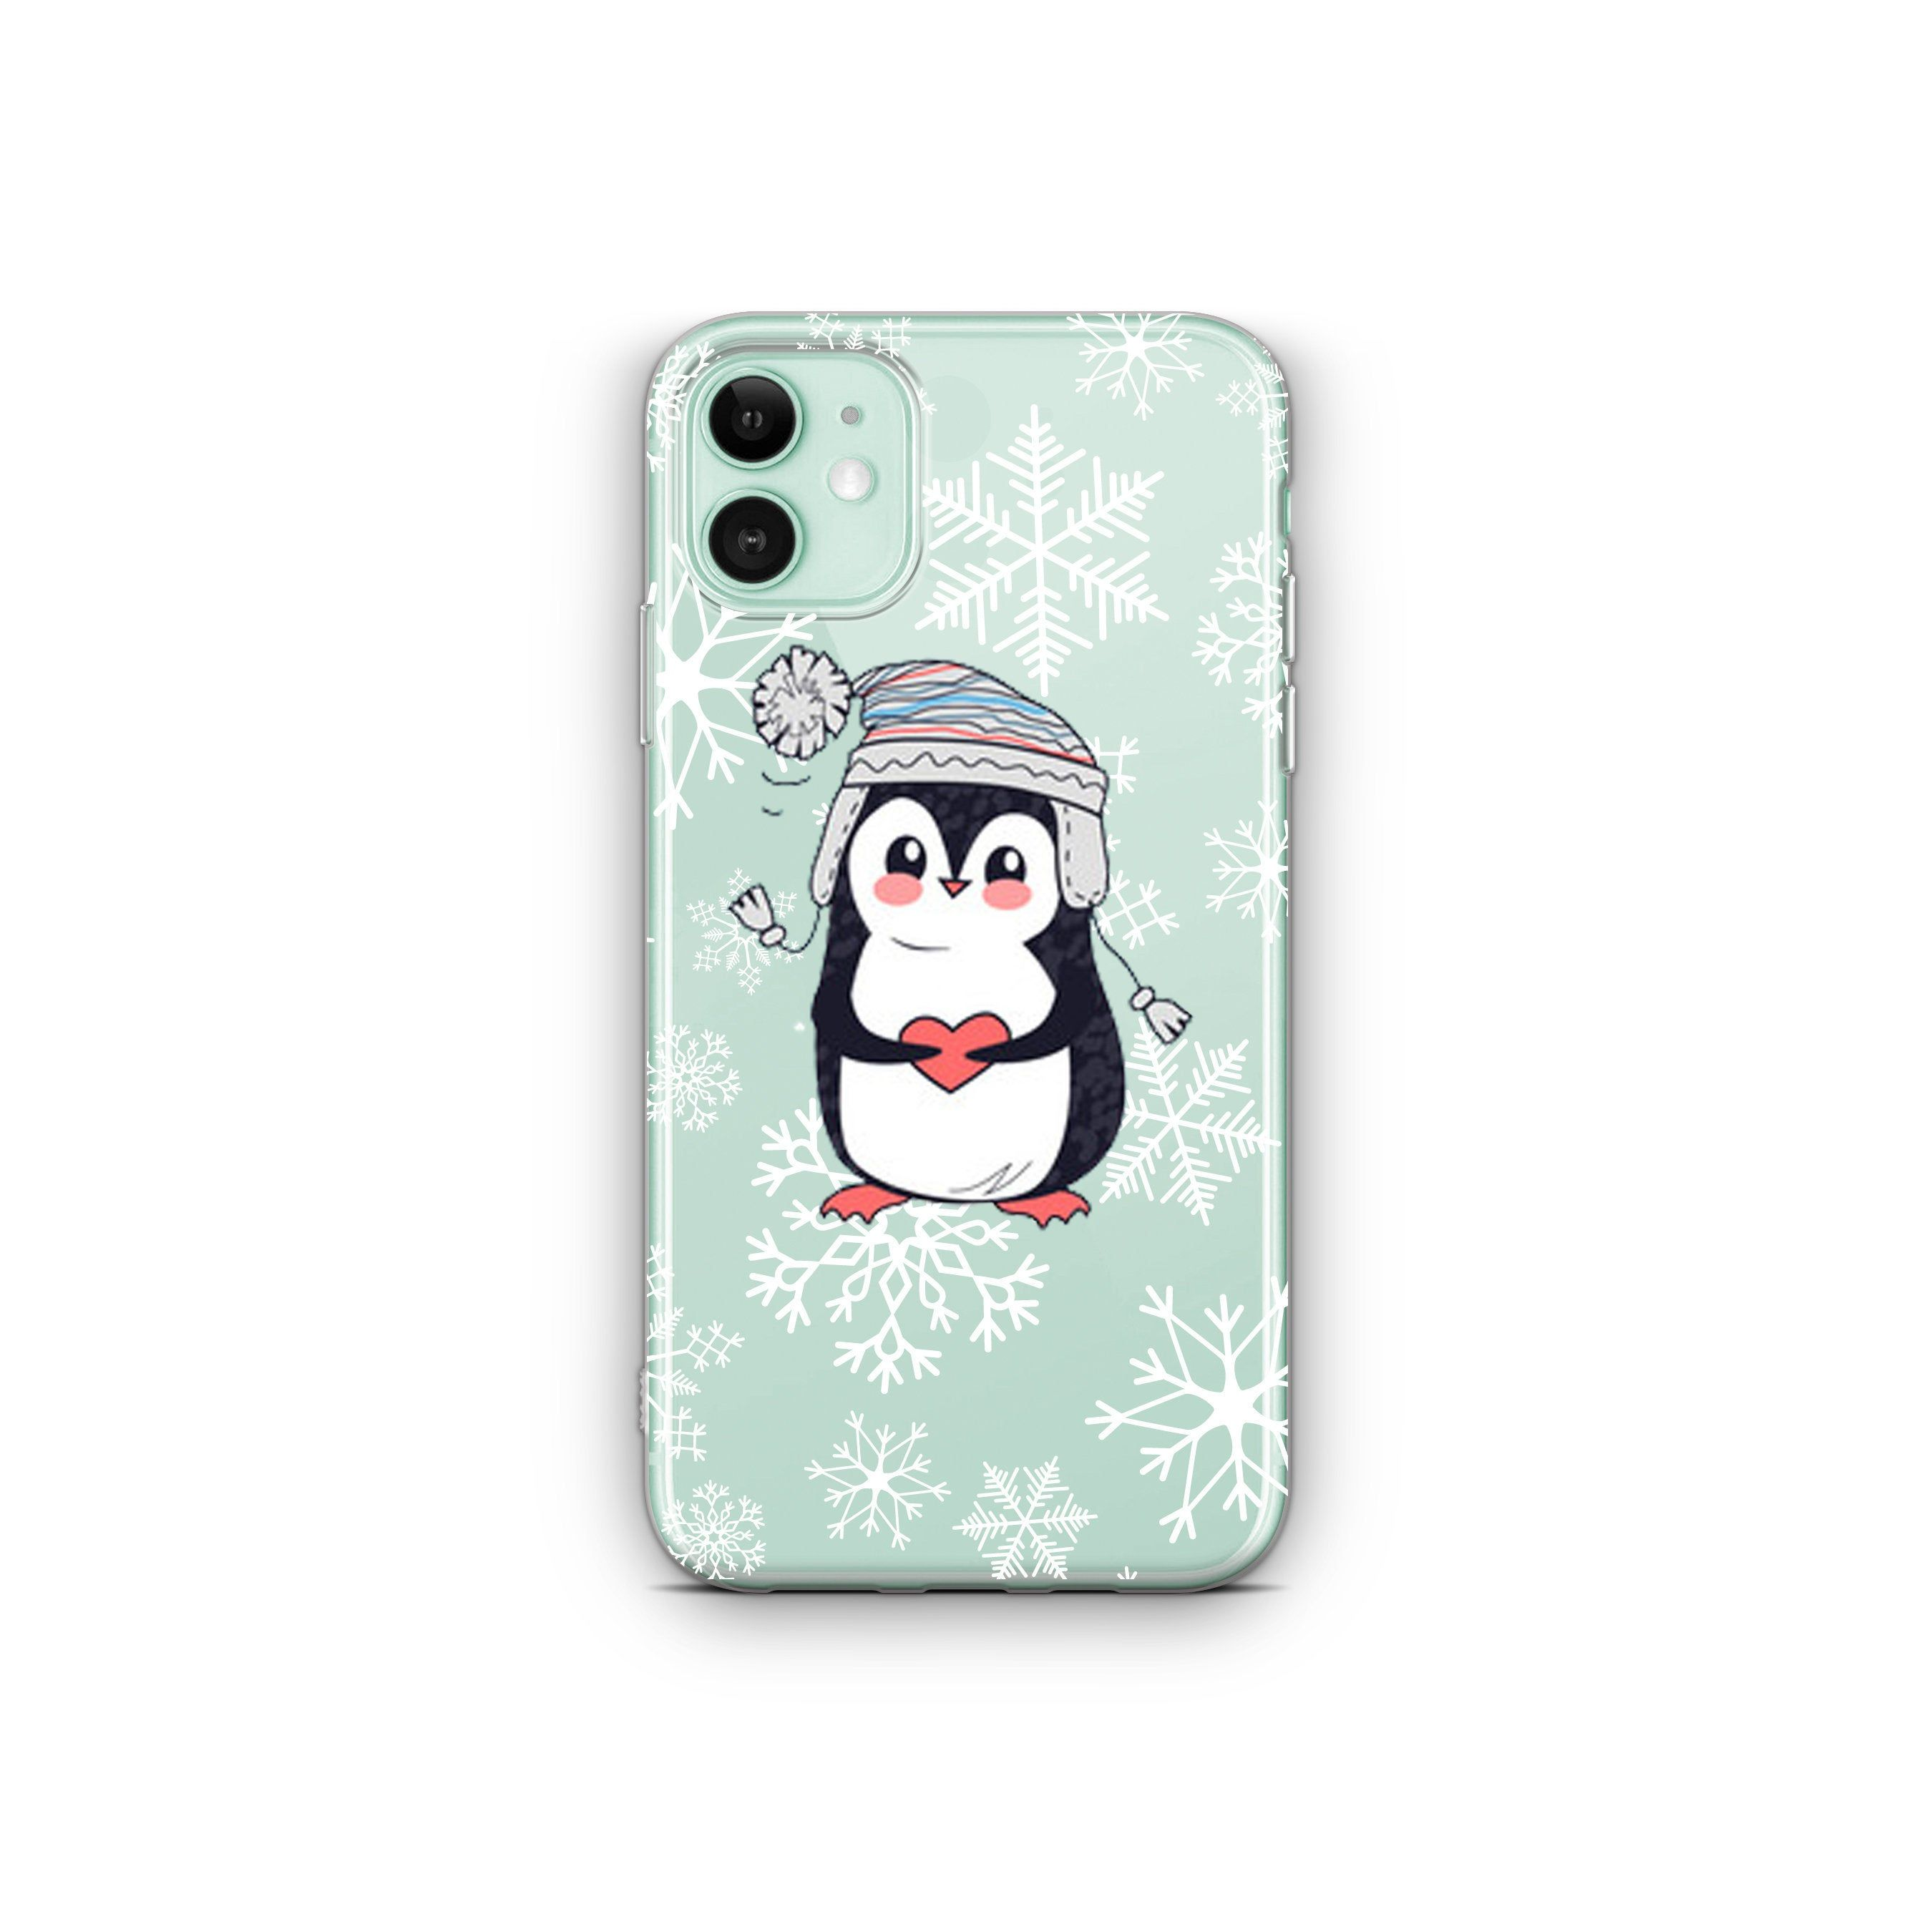 Clear Iphone 11 Christmas Iphone 12 Case Winter Snowflakes Etsy Case Stylish Iphone Cases Iphone 11